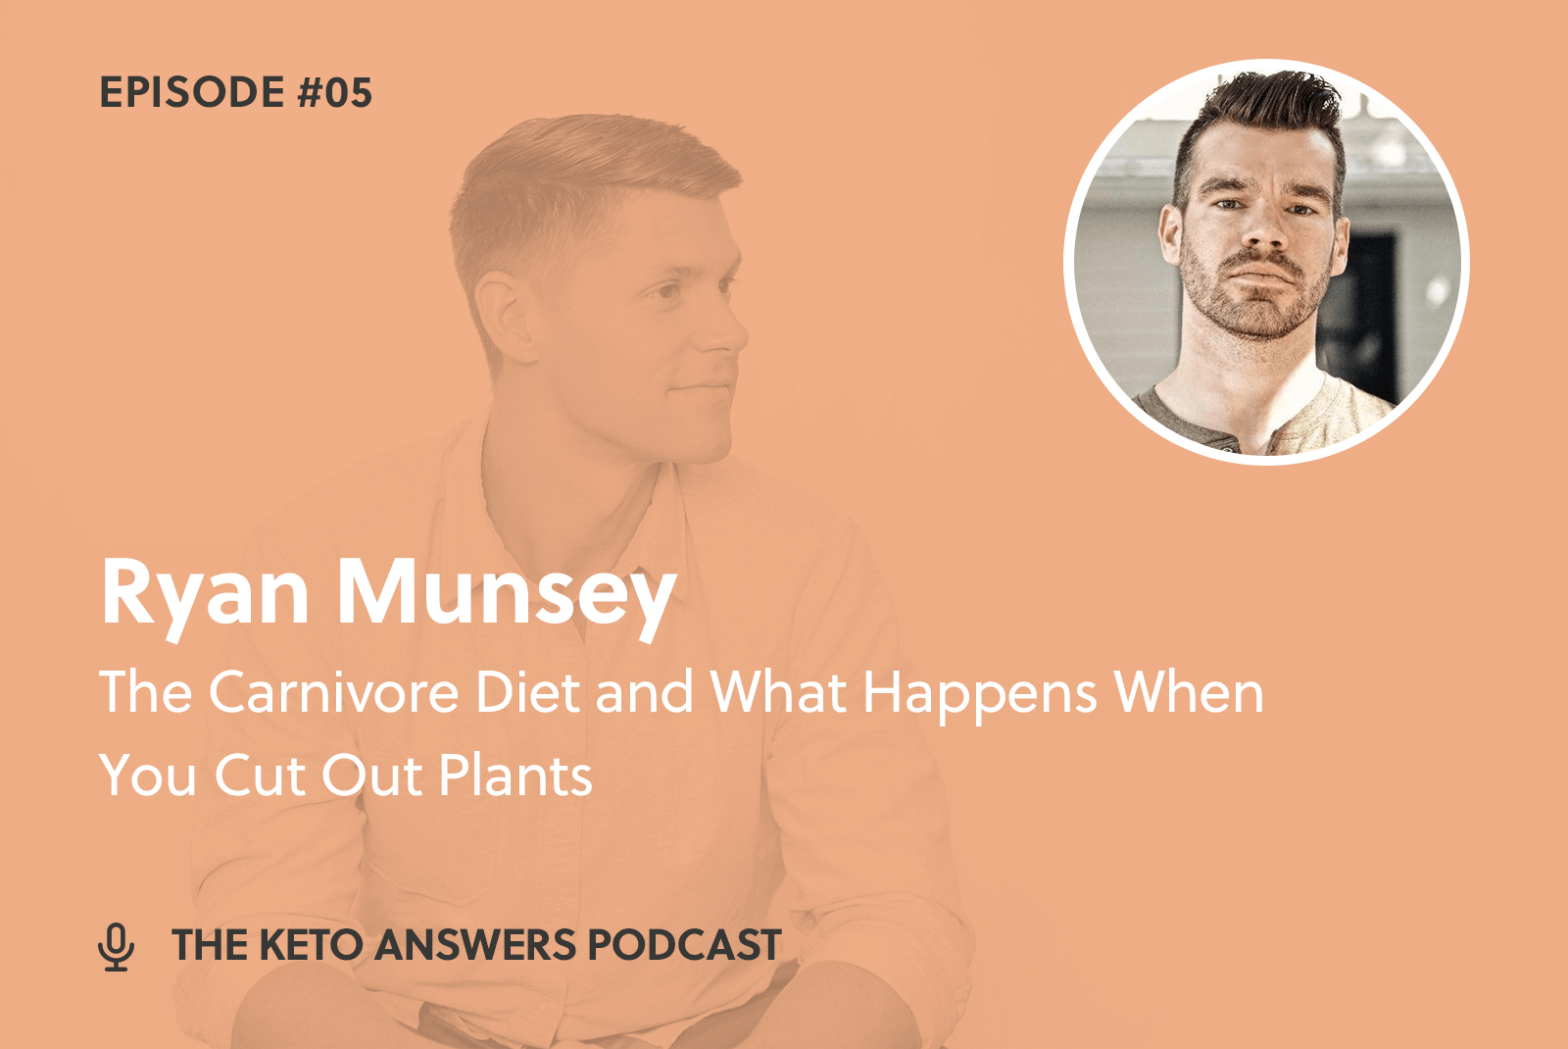 005: The Carnivore Diet and What Happens When You Cut Out Plants – Ryan Munsey